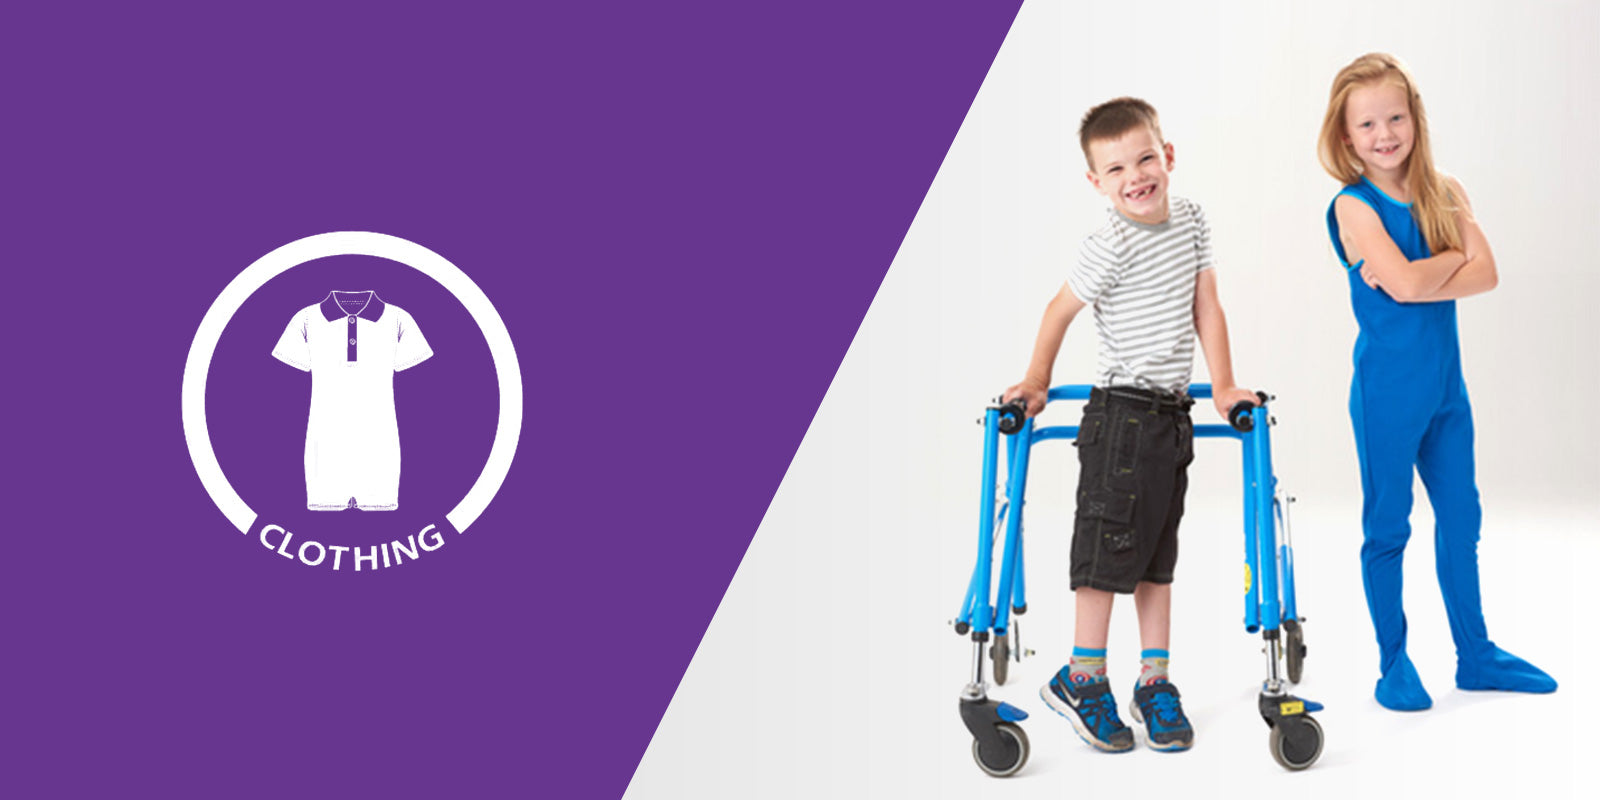 a0af299ca5c97 Special Needs Clothing | Adaptive Clothing & Accessories for Children